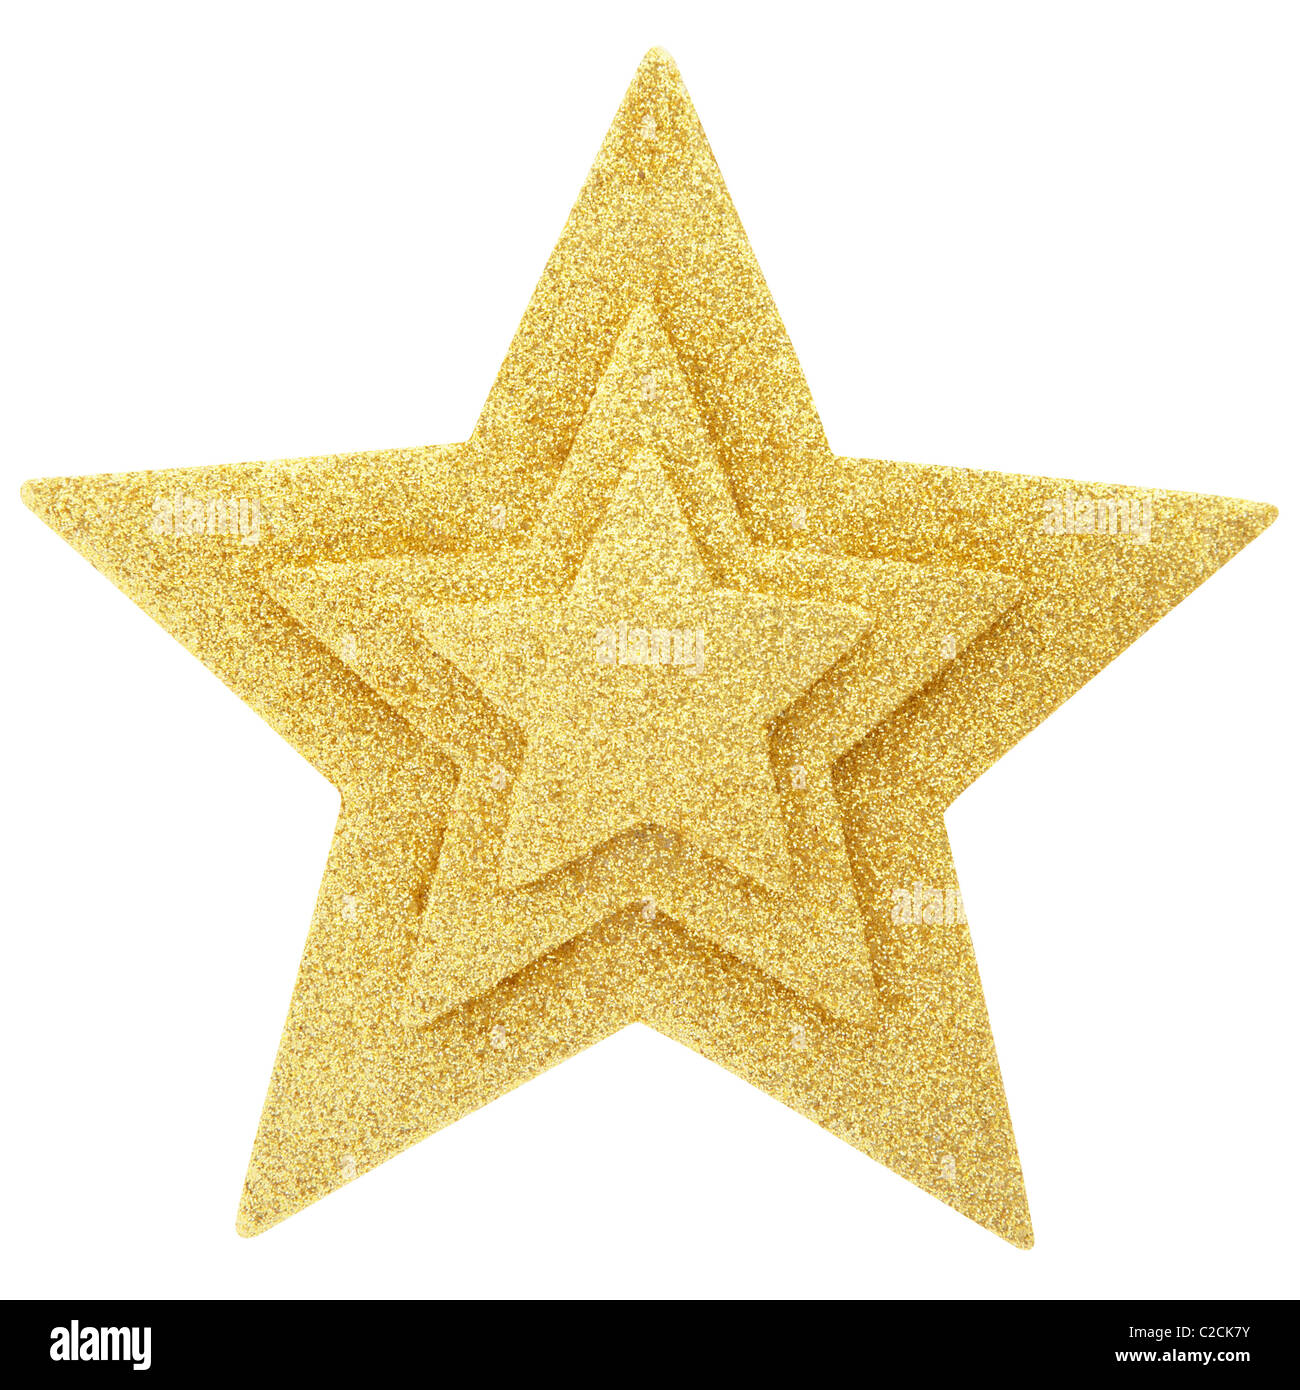 Gold star - Stock Image